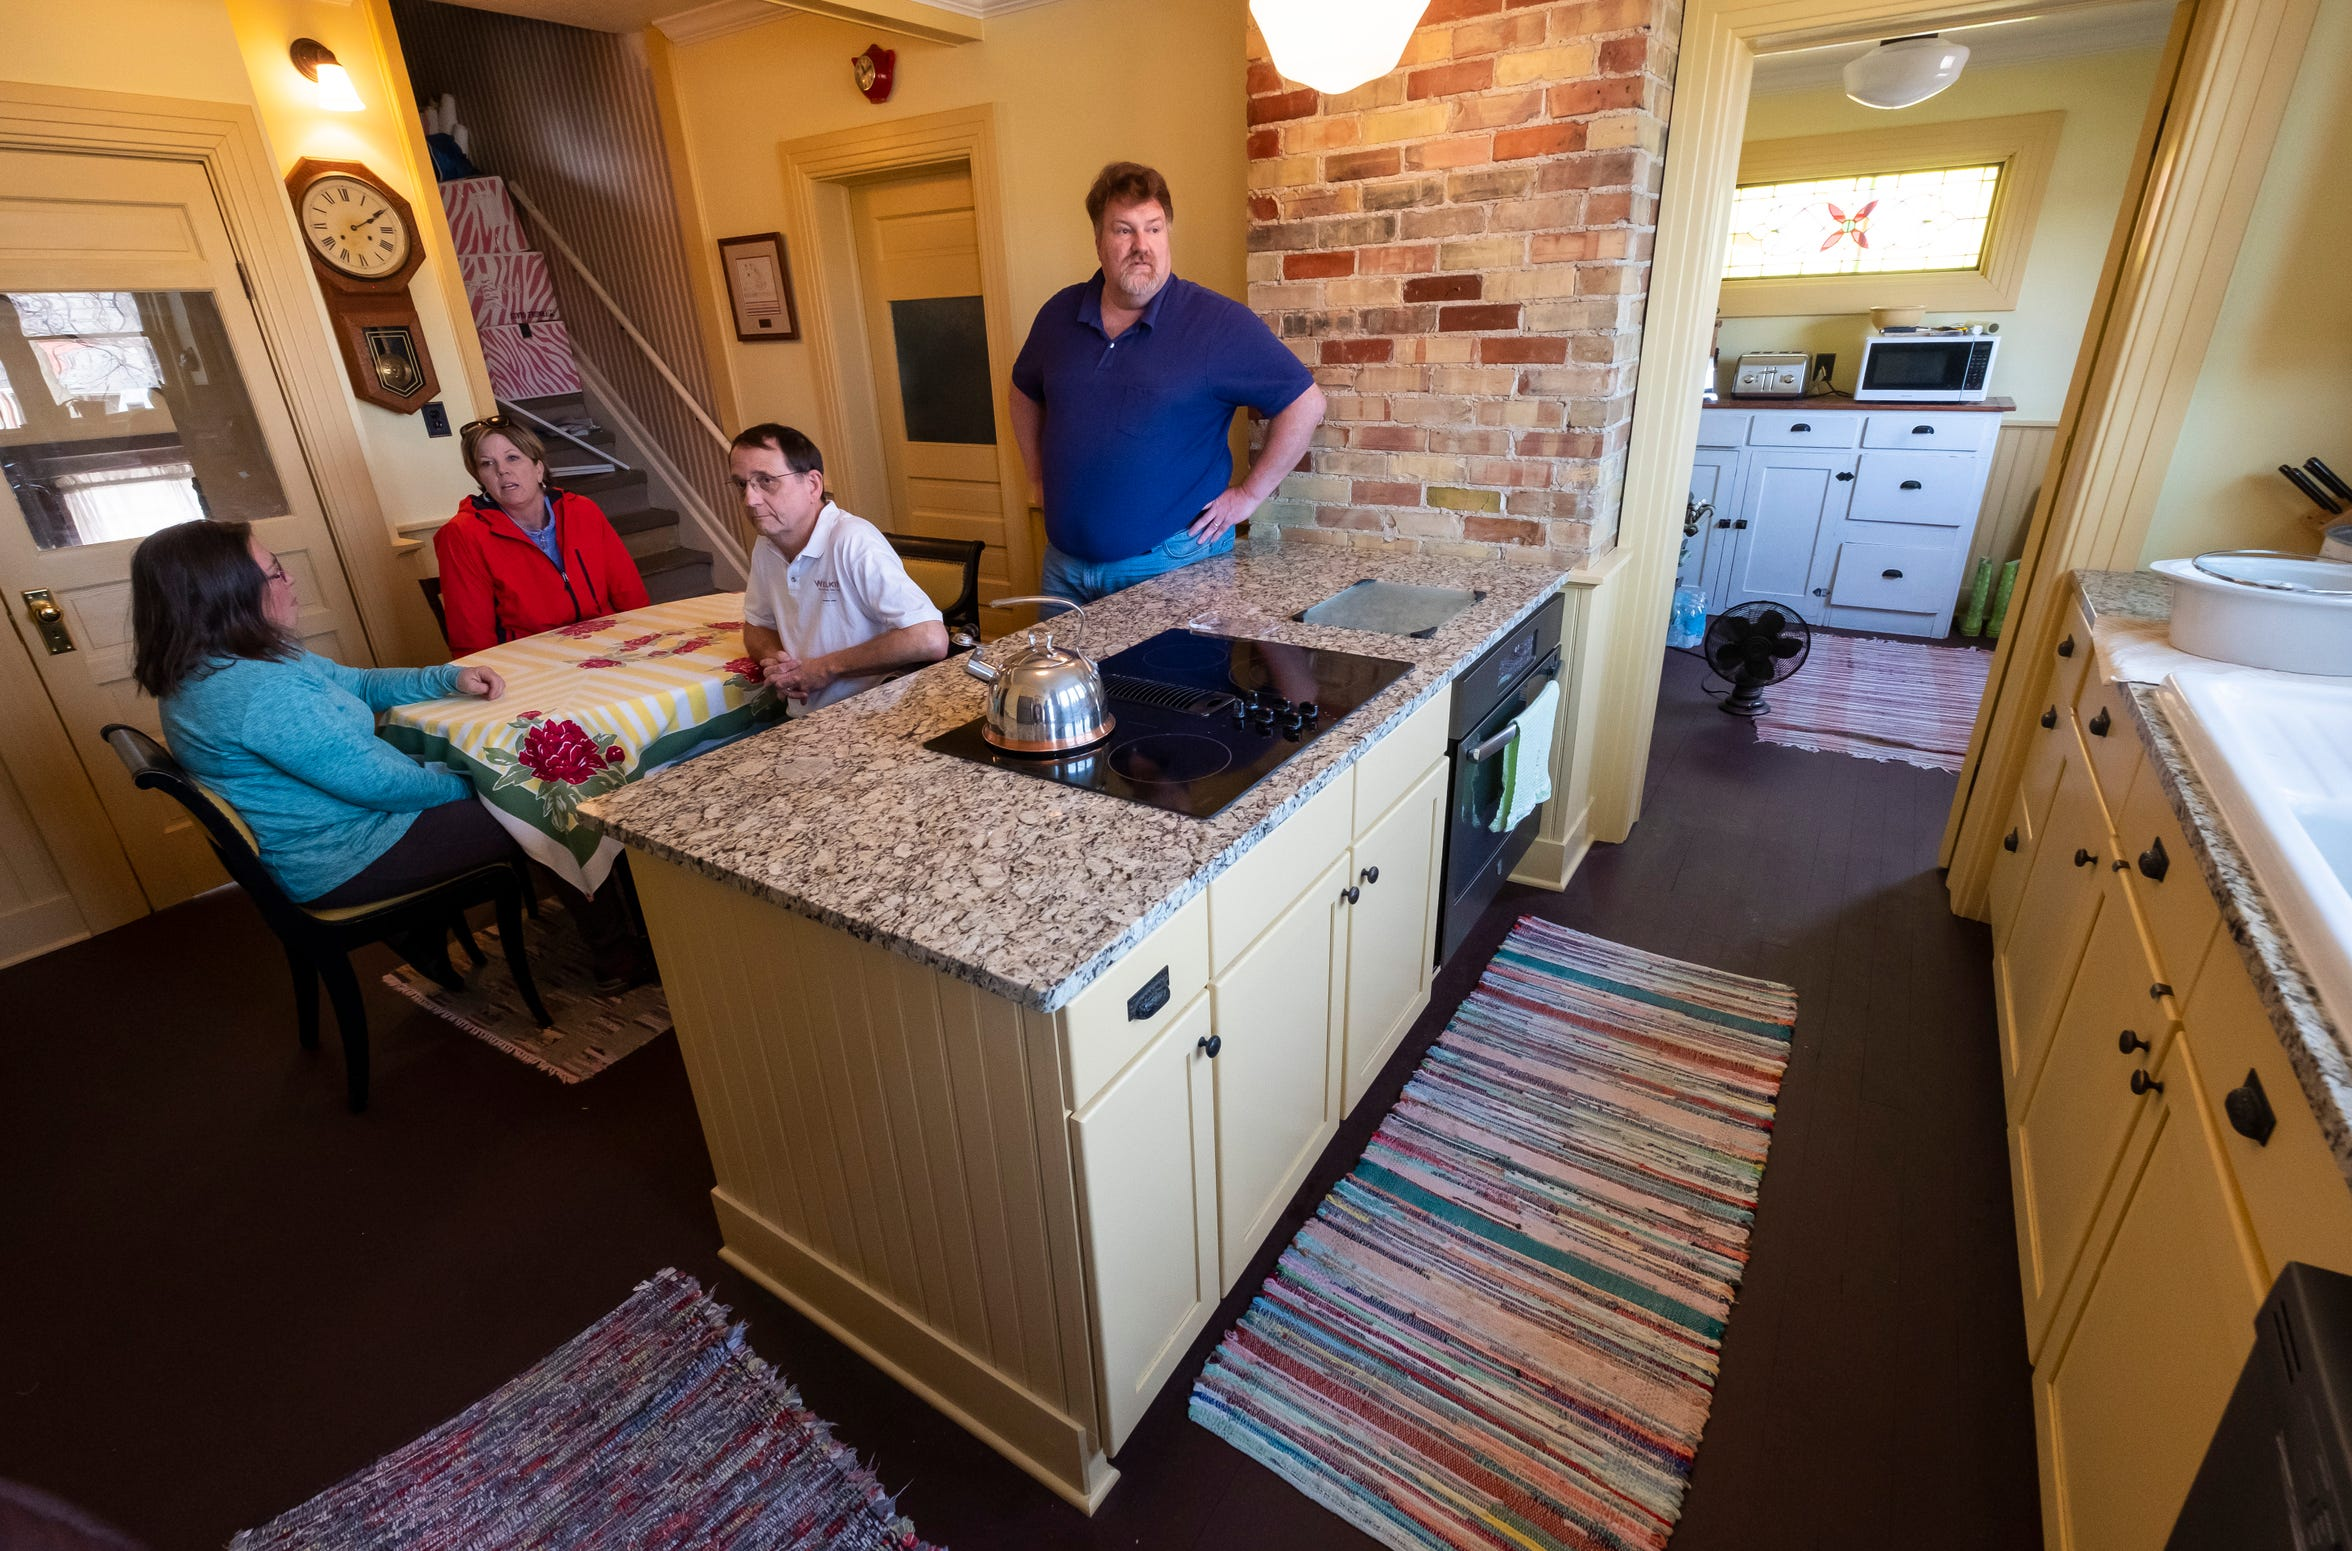 Olde Town residents Kevin and Bamy Banker, left and second to right, Cheri Smith, second to left, and Chris Troy discuss efforts to revitalize the neighborhood Friday, March 29, 2019 in the remodelled kitchen of Chris Troy's home. Olde Town residents feared the Center's original Central Business District rezoning request would've put a damper on the neighborhood's revitalization, but the request was withdrawn Wednesday.